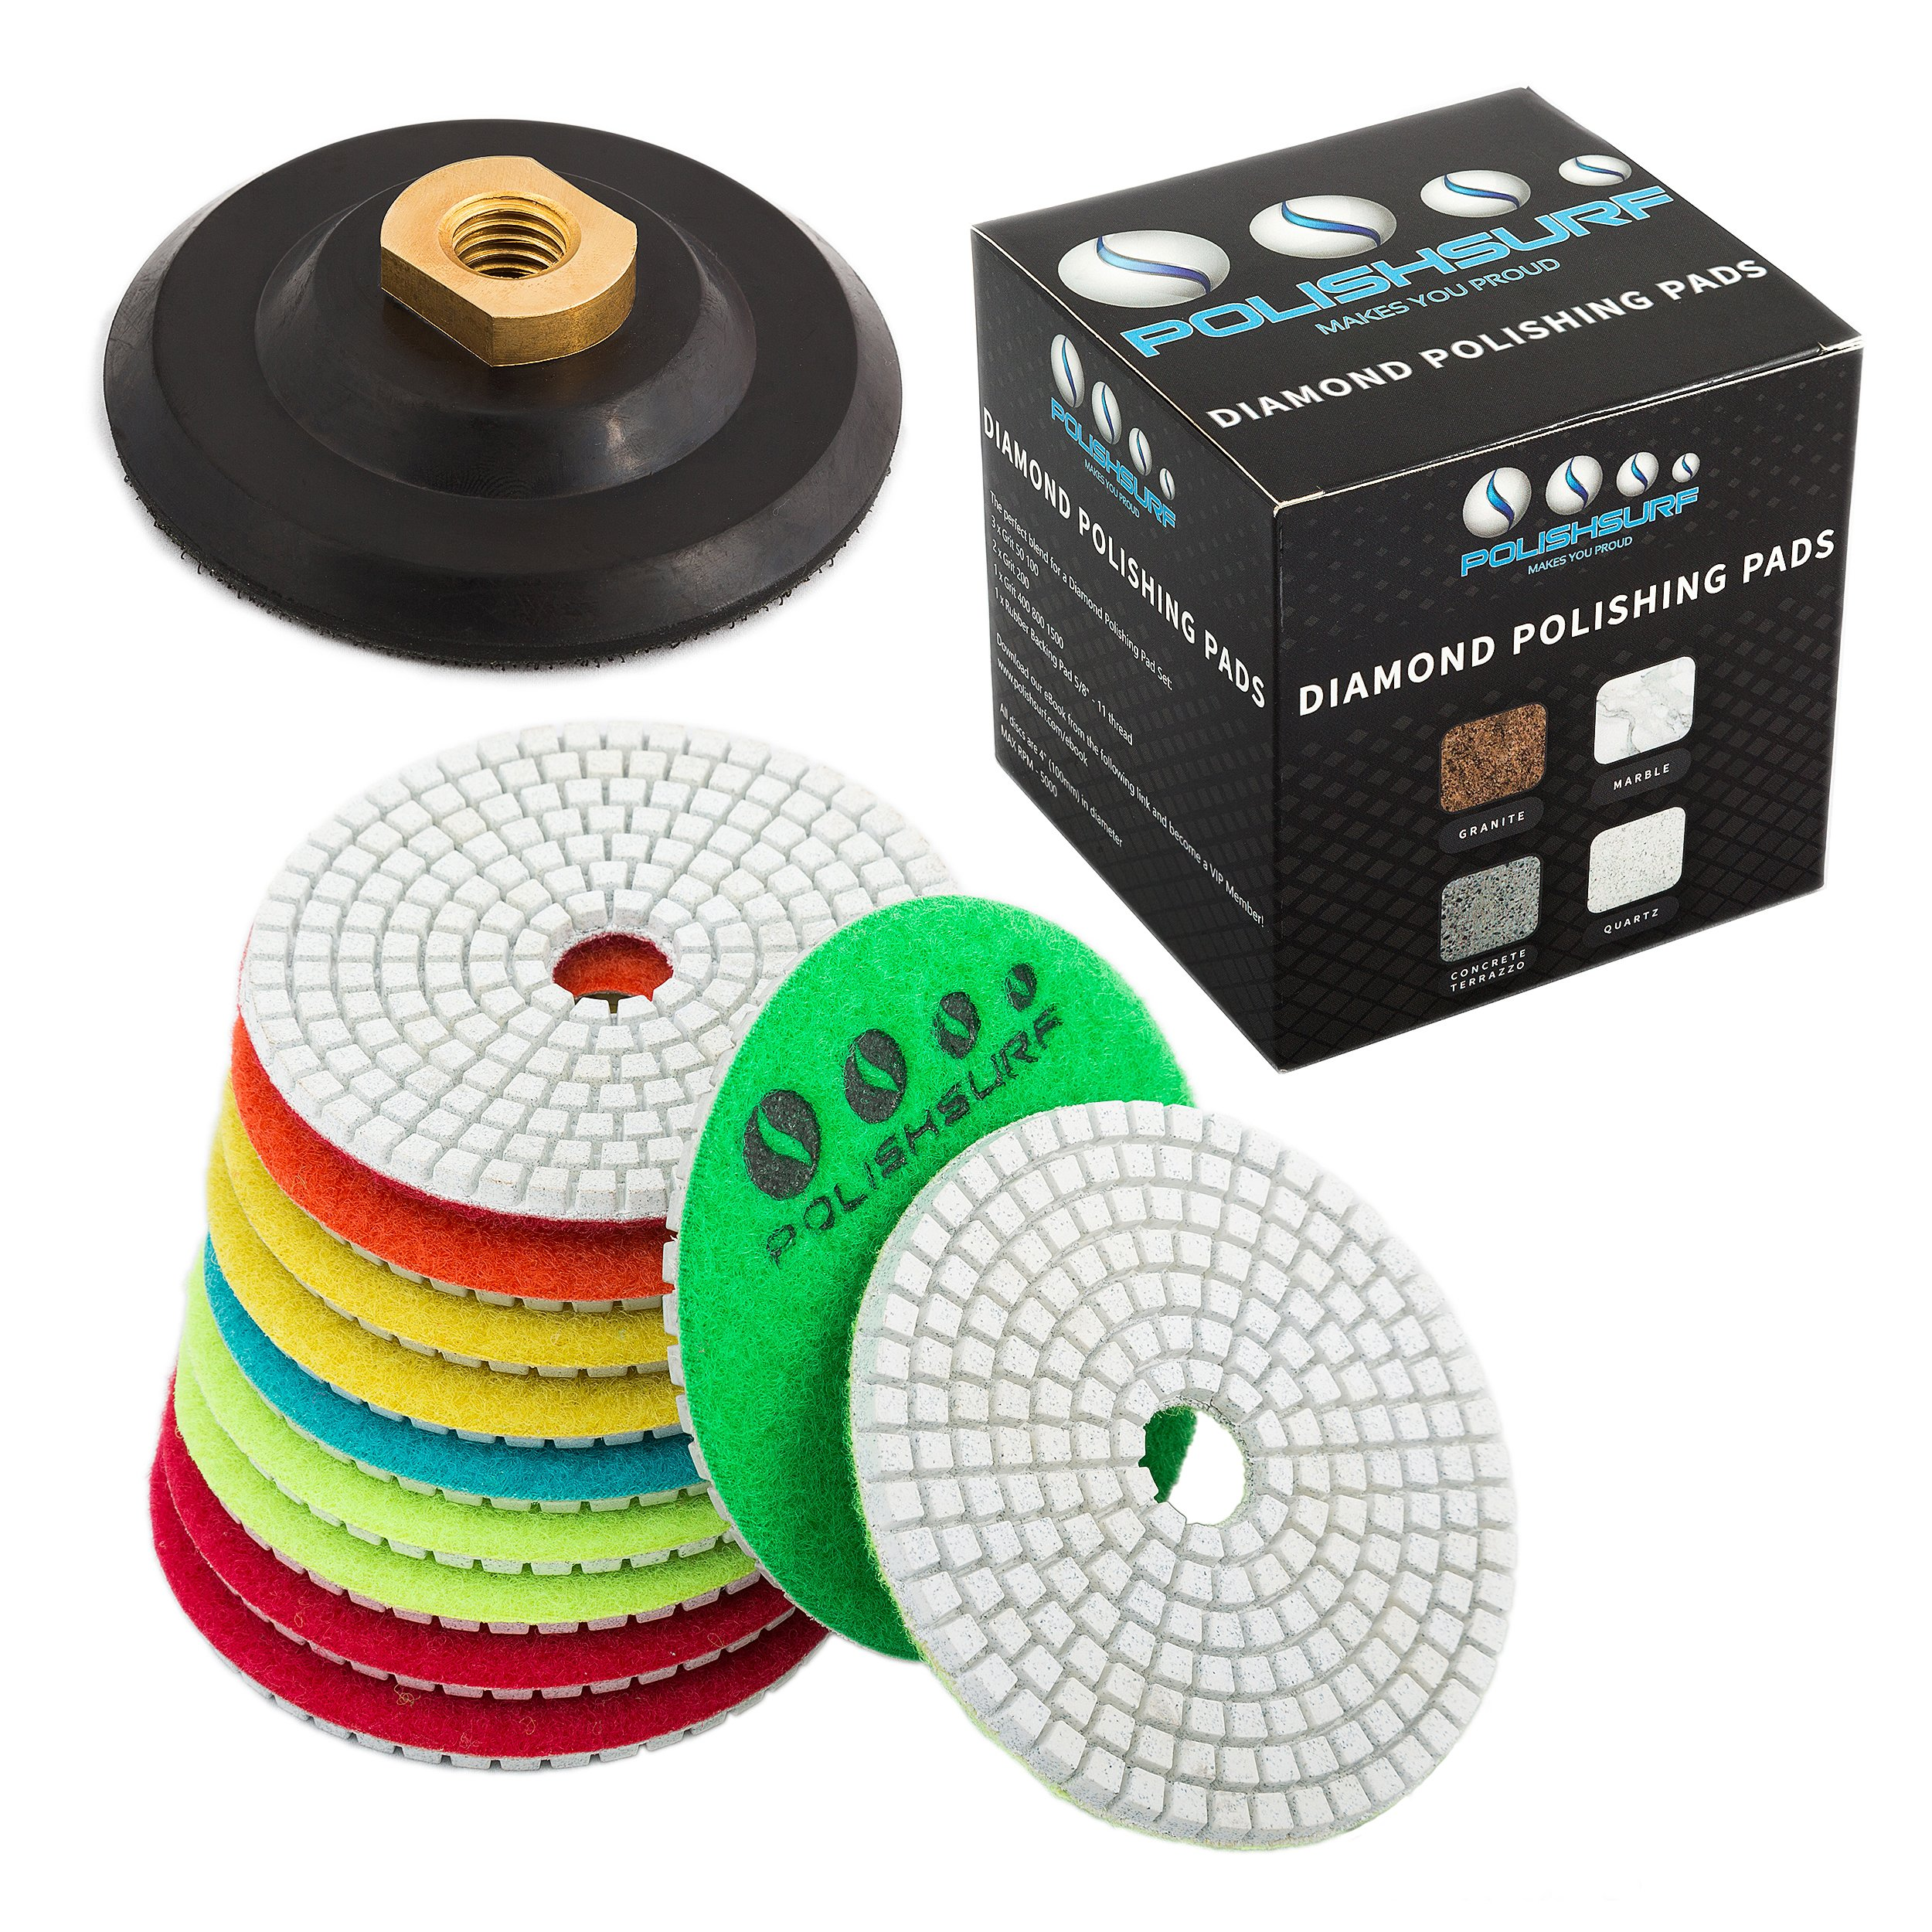 Diamond Polishing Pads 4 inch Wet/Dry Set of 11+1 Backer Pad for Granite Concrete Marble Polishing | Free eBook - Polishing Process Best Practices by POLISHSURF